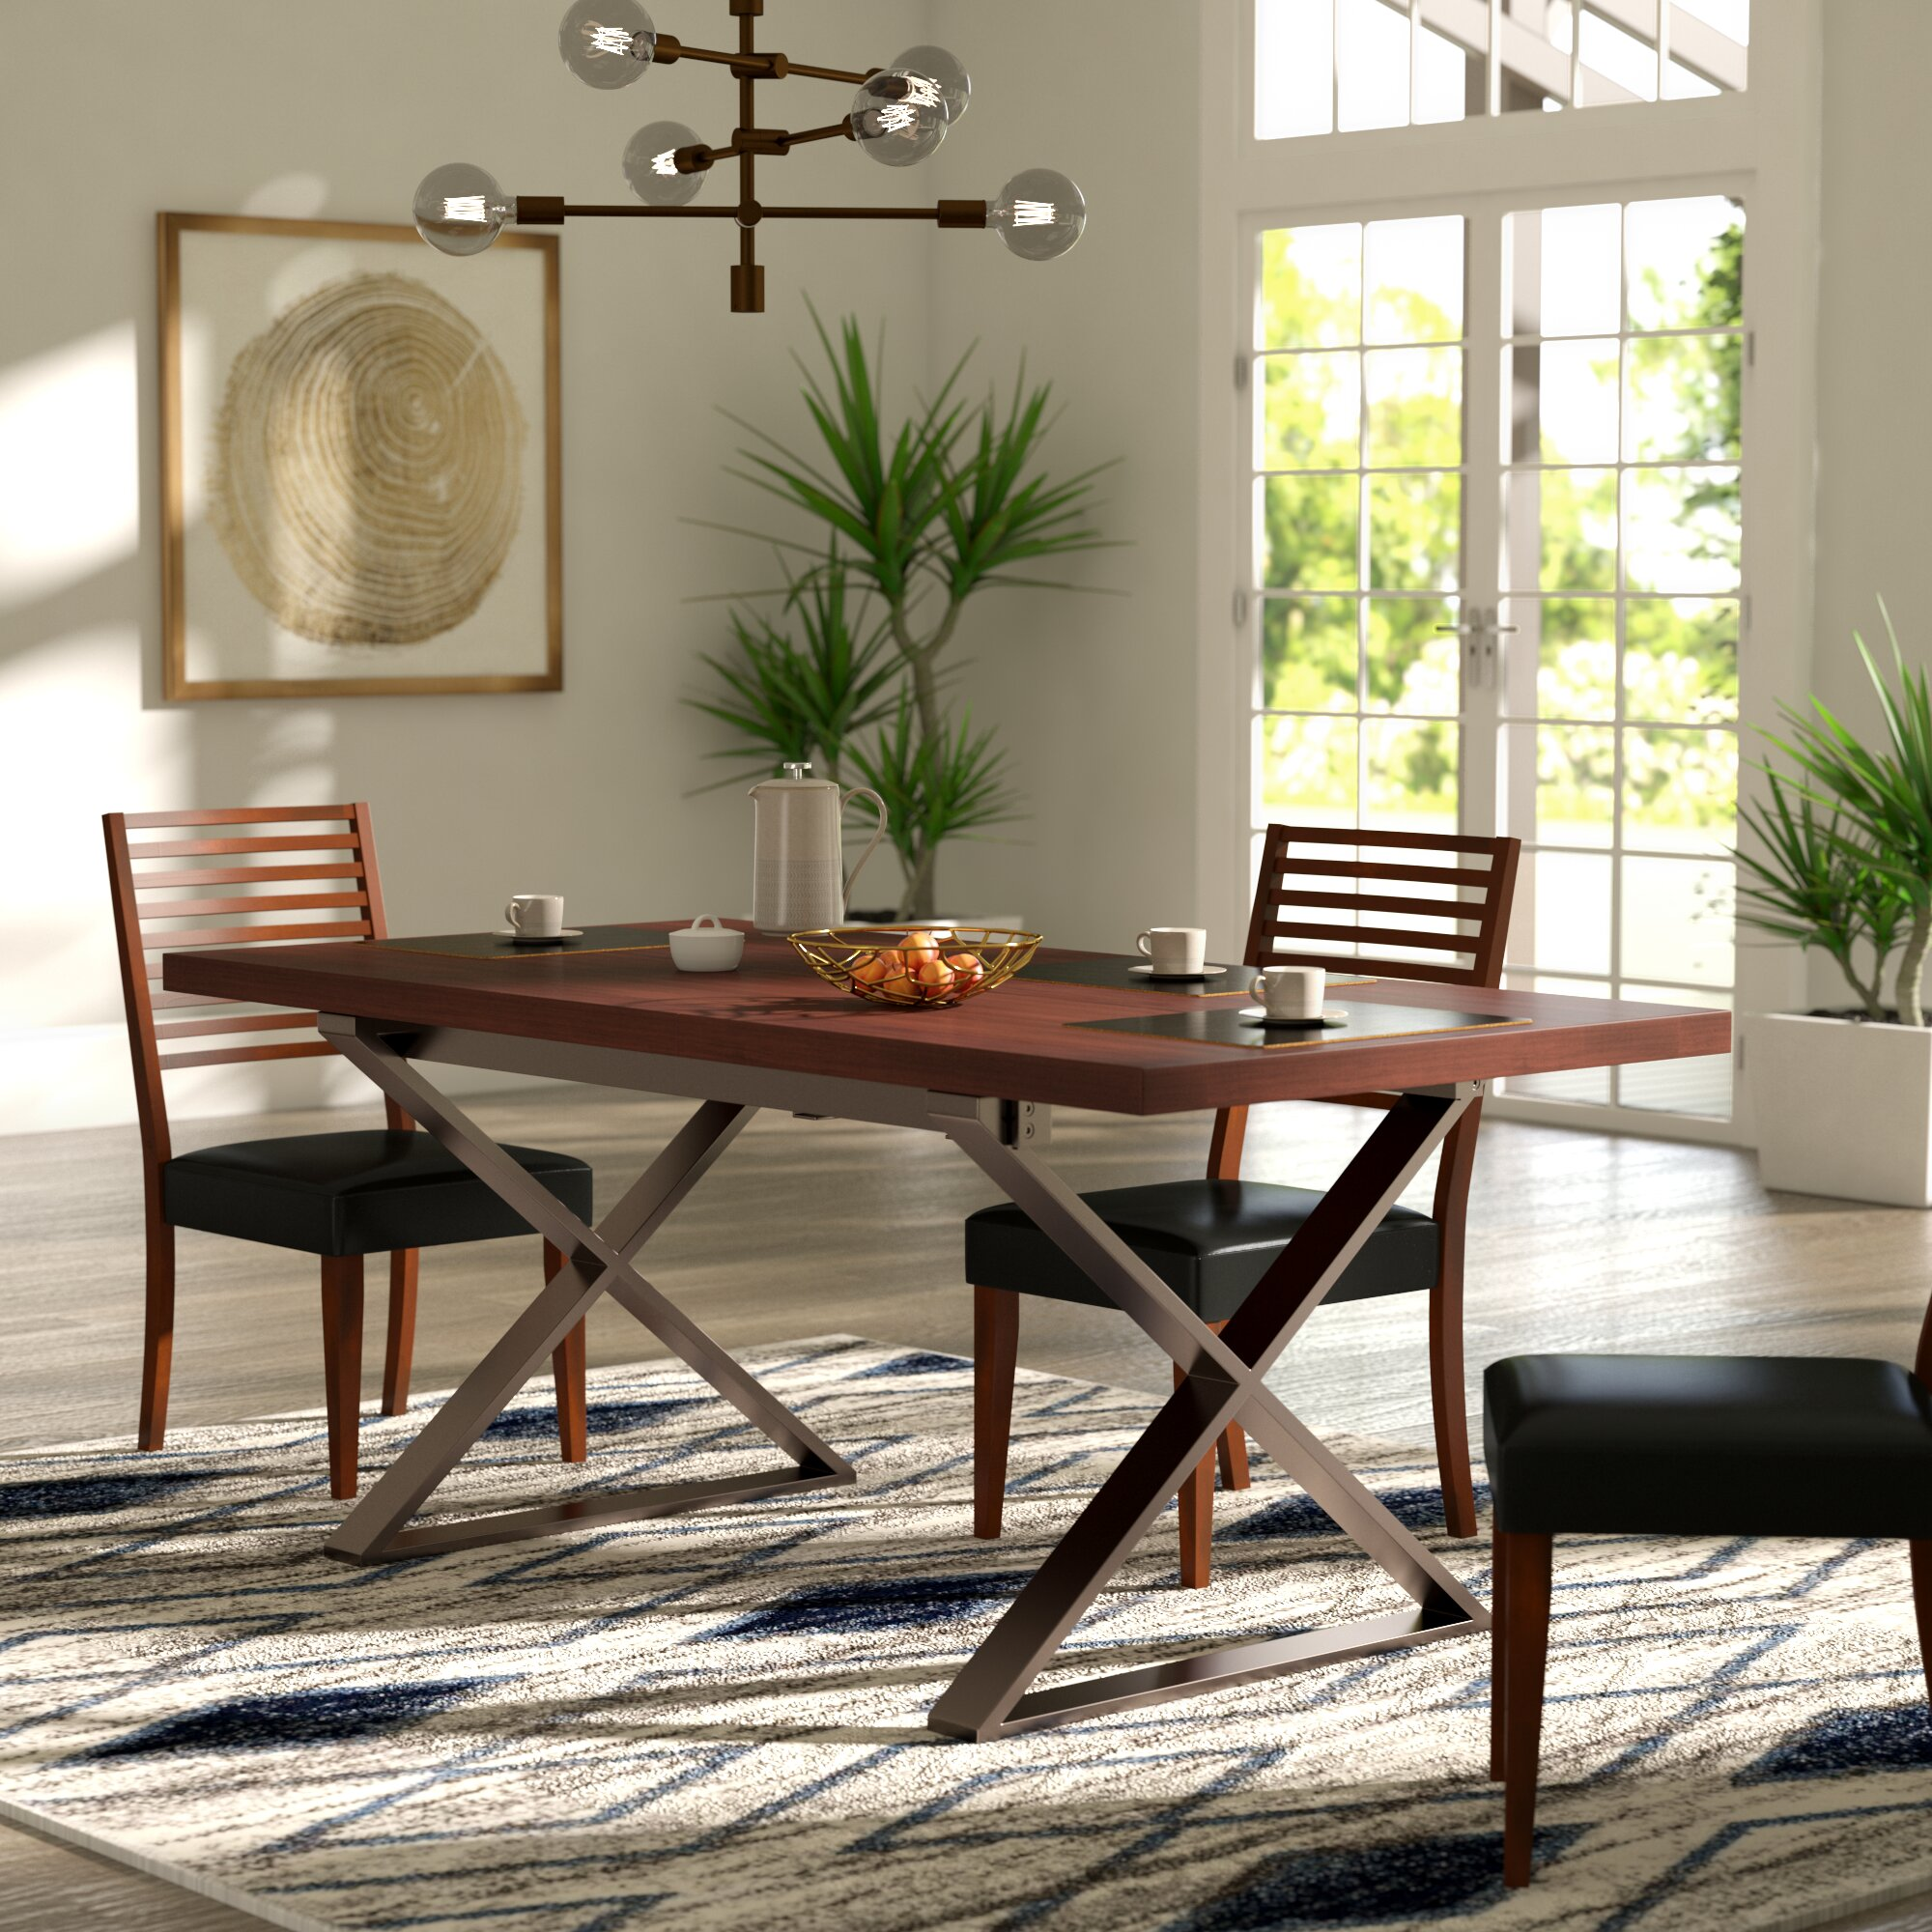 Brayden Studio Mathison Extendable Dining Table & Reviews | Wayfair